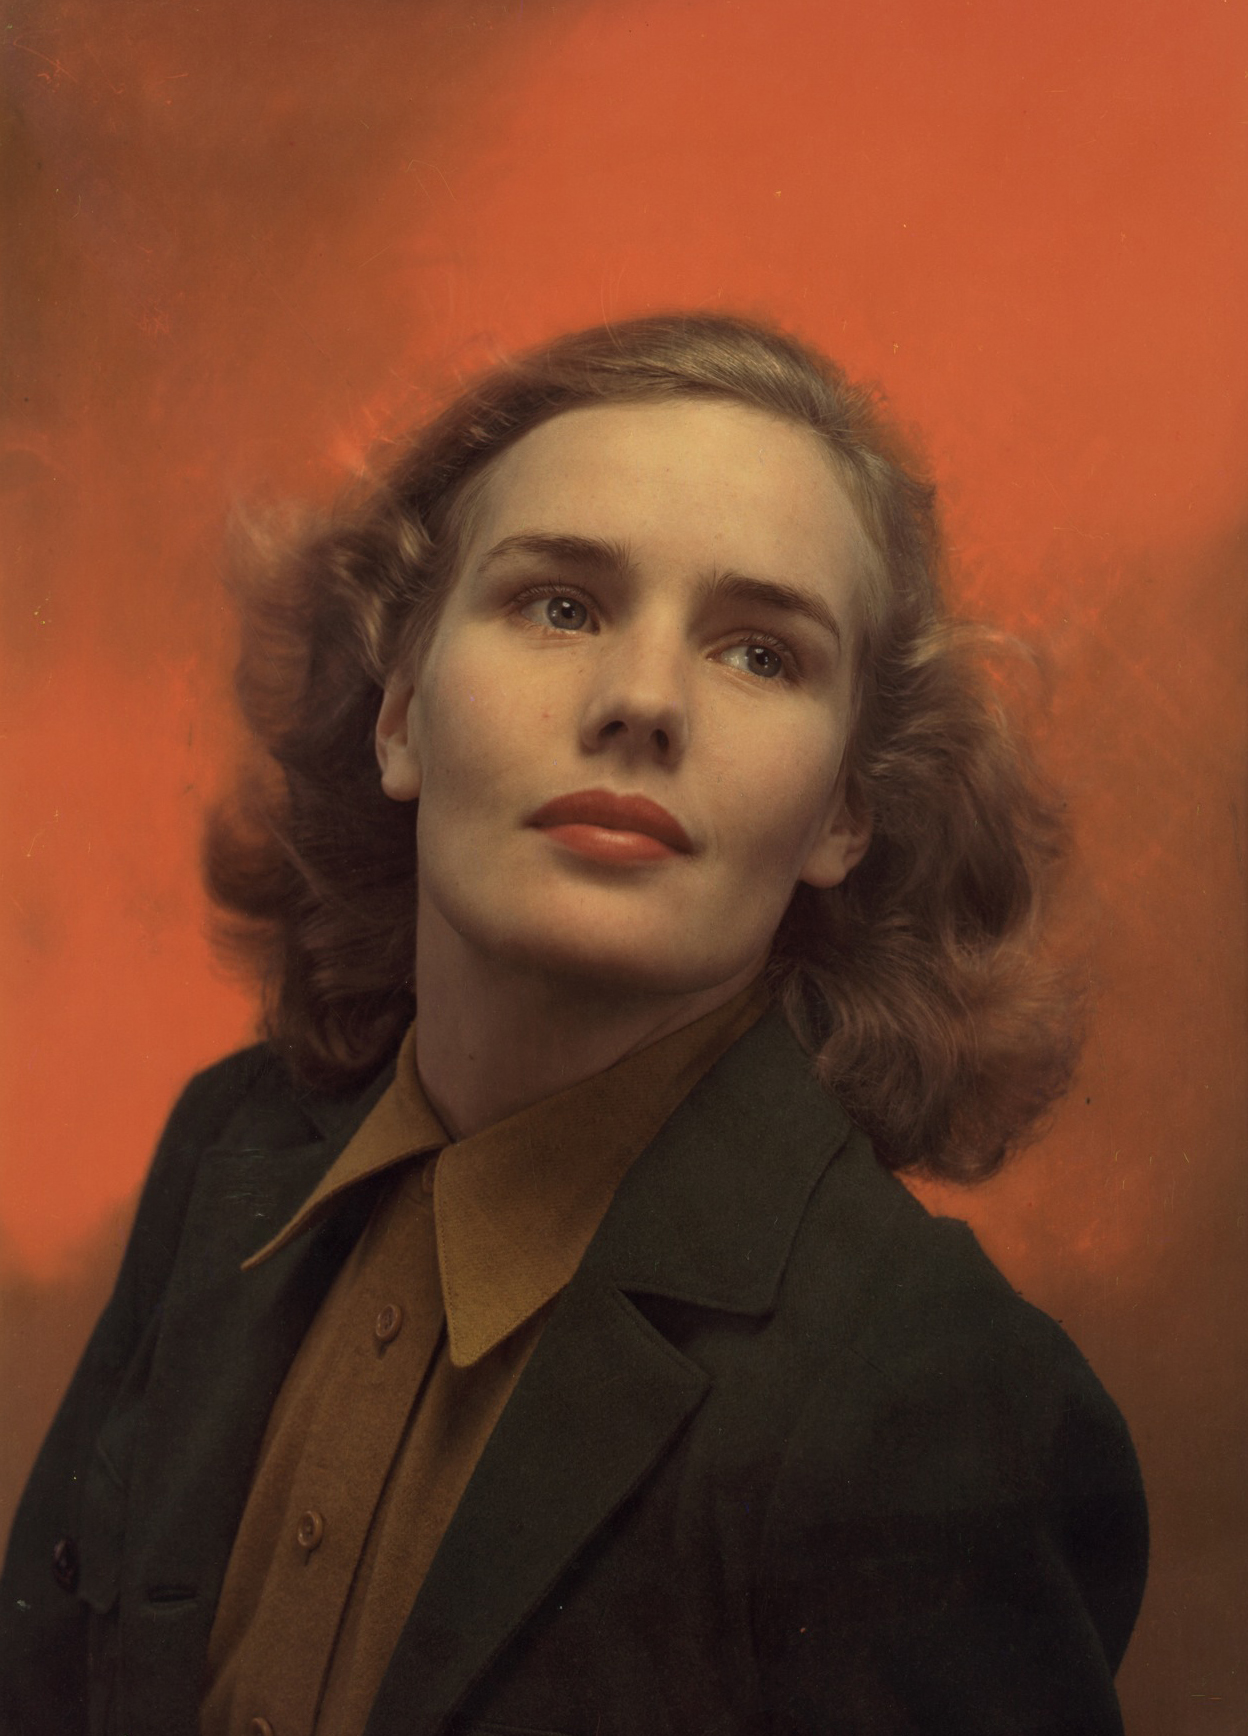 Frances Farmer, Sept. 21, 1937